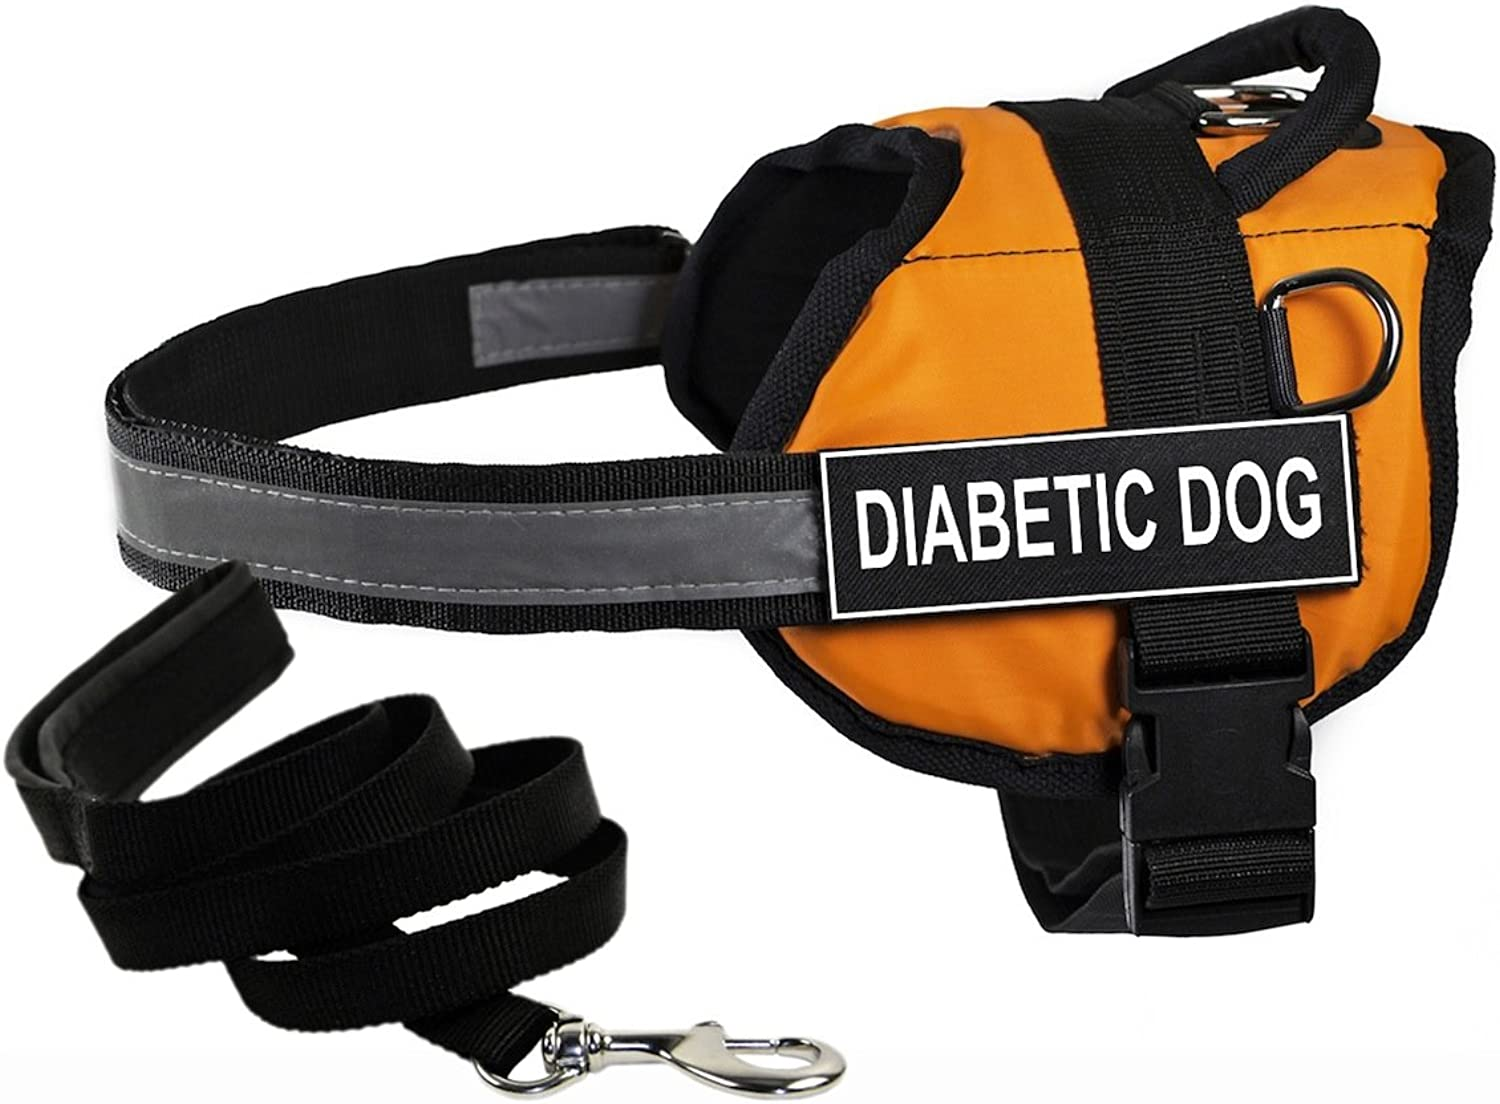 Dean & Tyler's DT Works orange DIABETIC DOG Harness with, Small, and Black 6 ft Padded Puppy Leash.